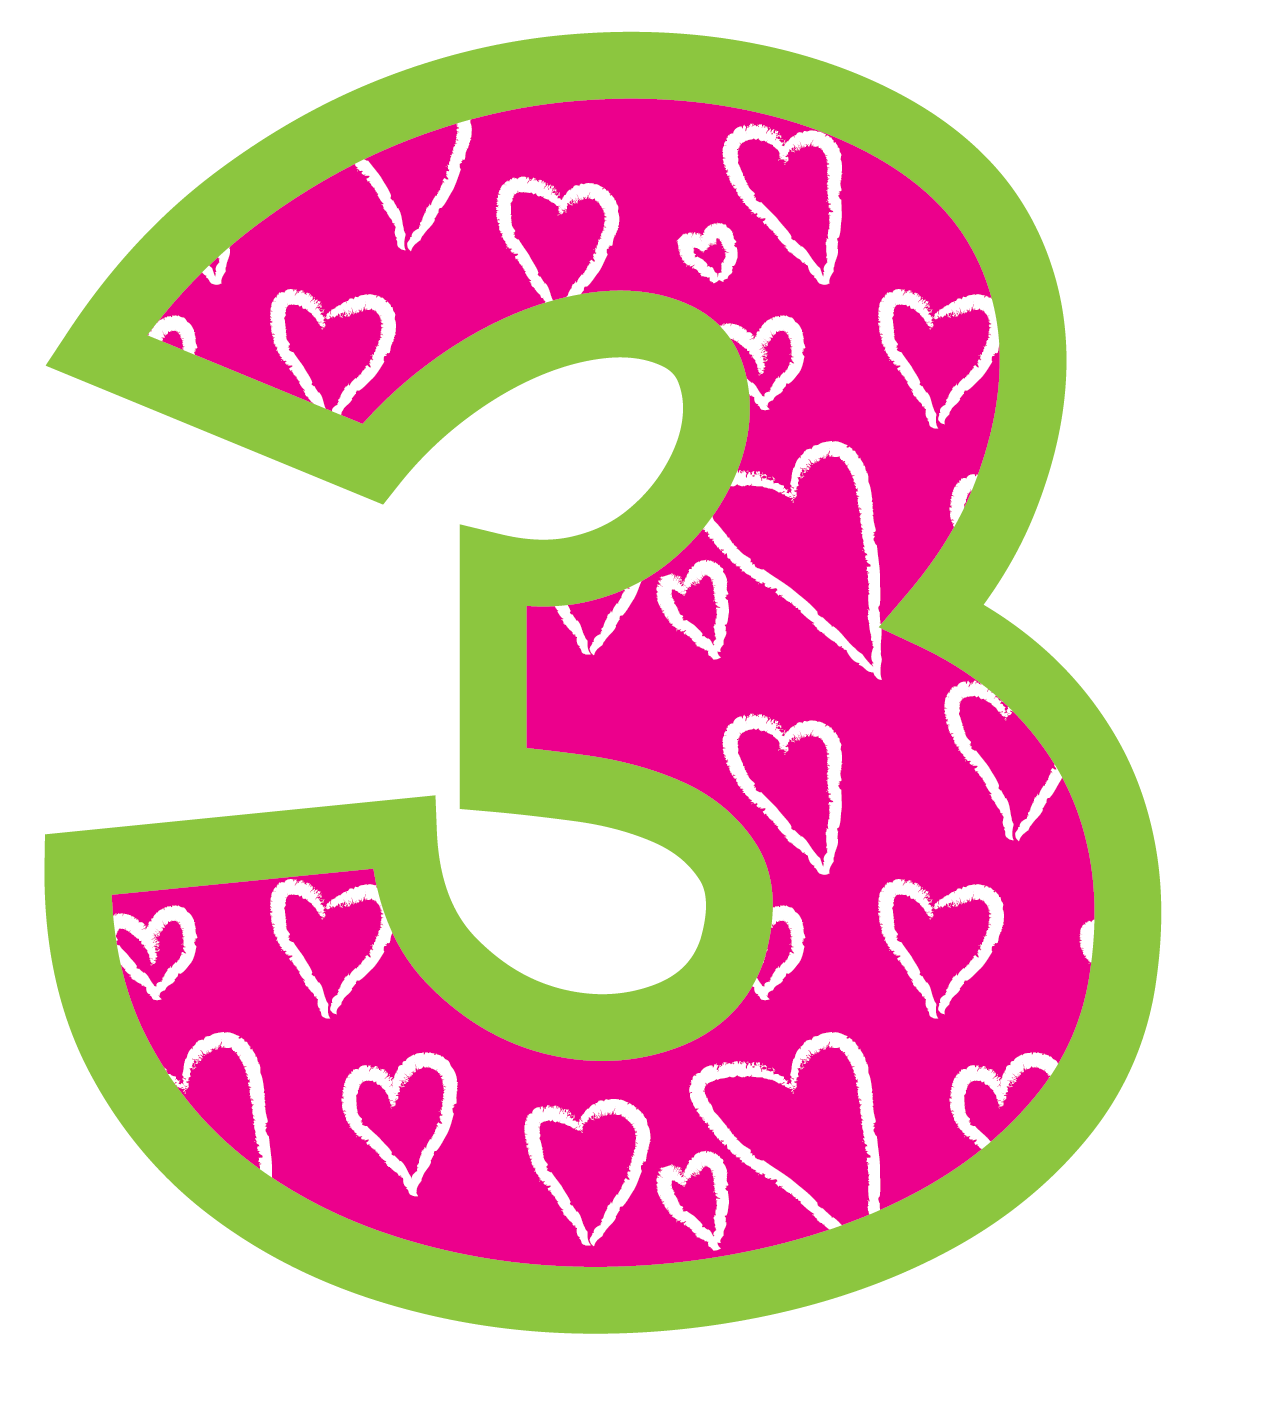 Number 2 clipart grade. Happiness is watermelon shaped